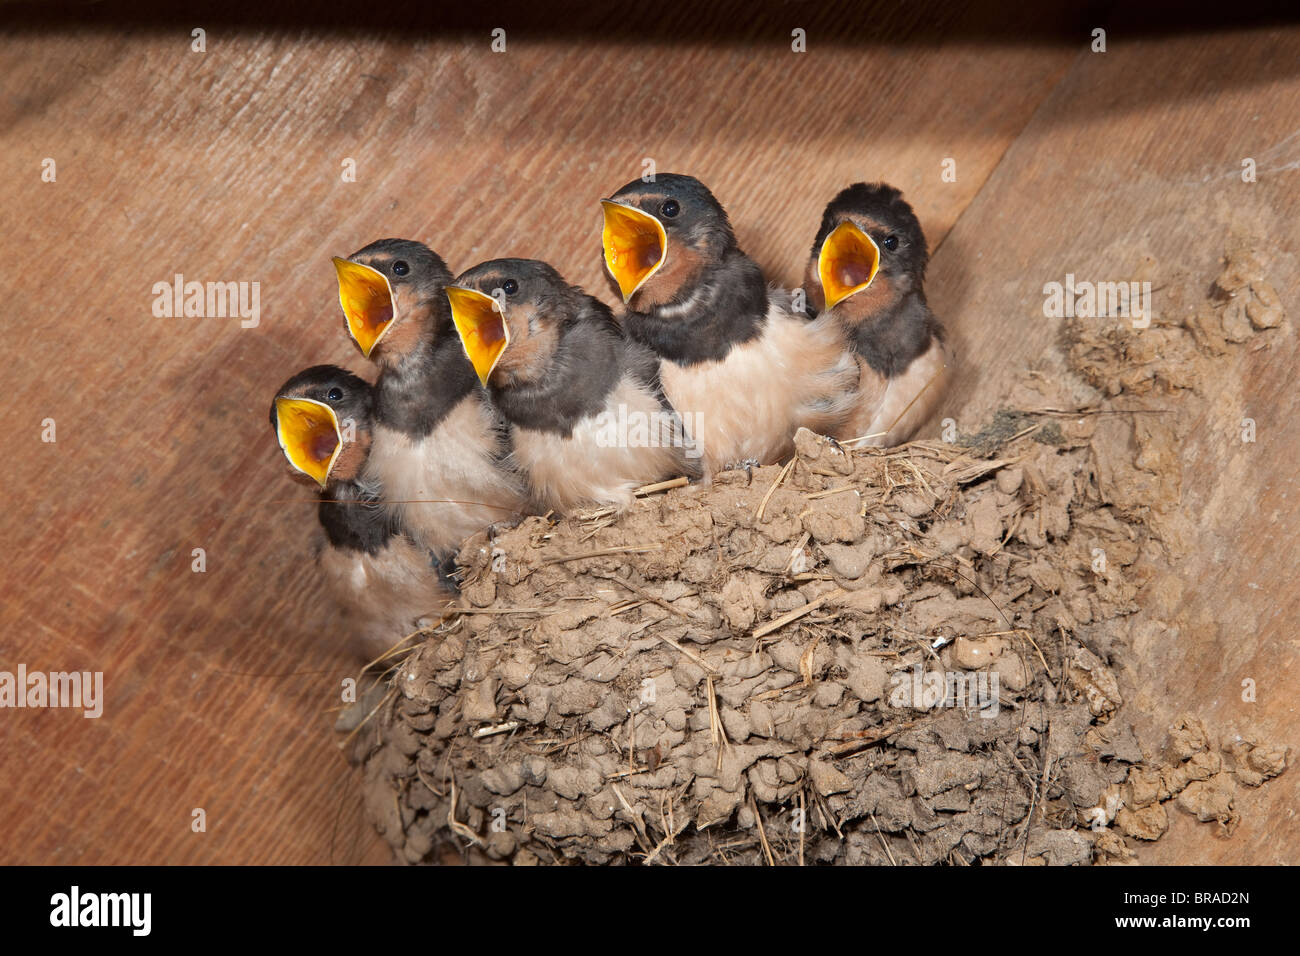 Swallow Hirundo rustica Young in nest at about 14 days old - Stock Image